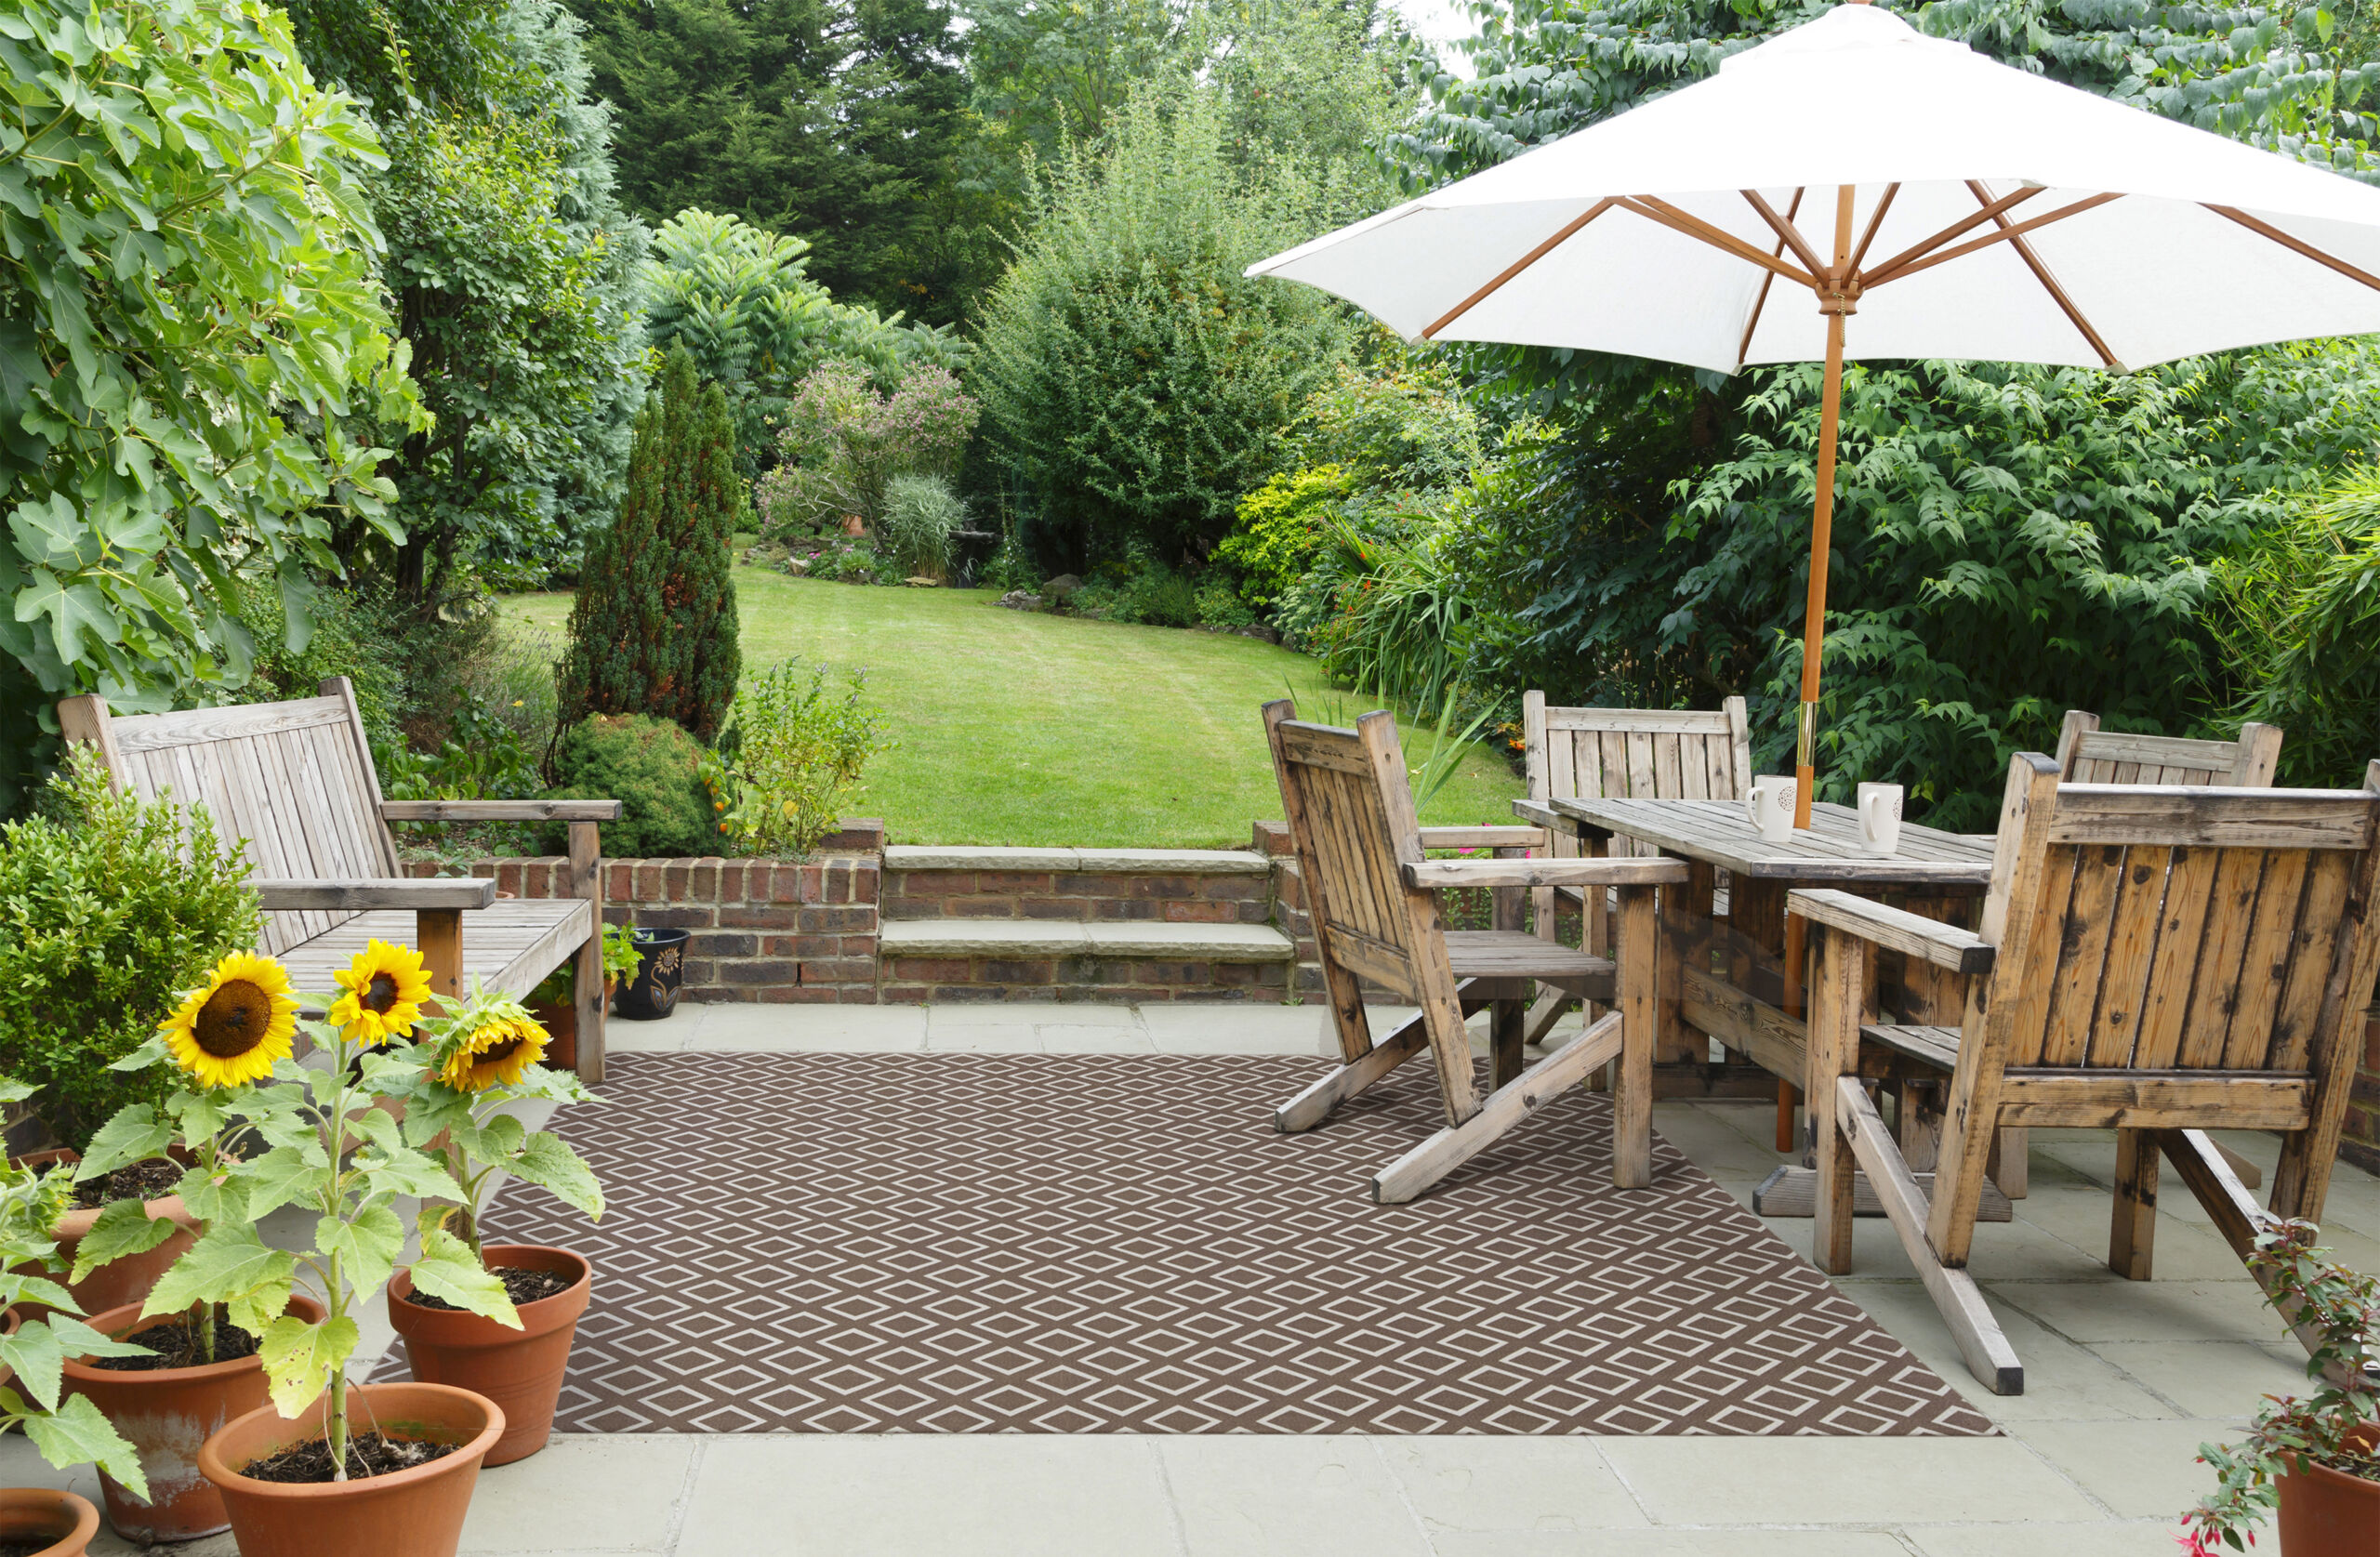 Foss Floors area rug being used in outside garden patio